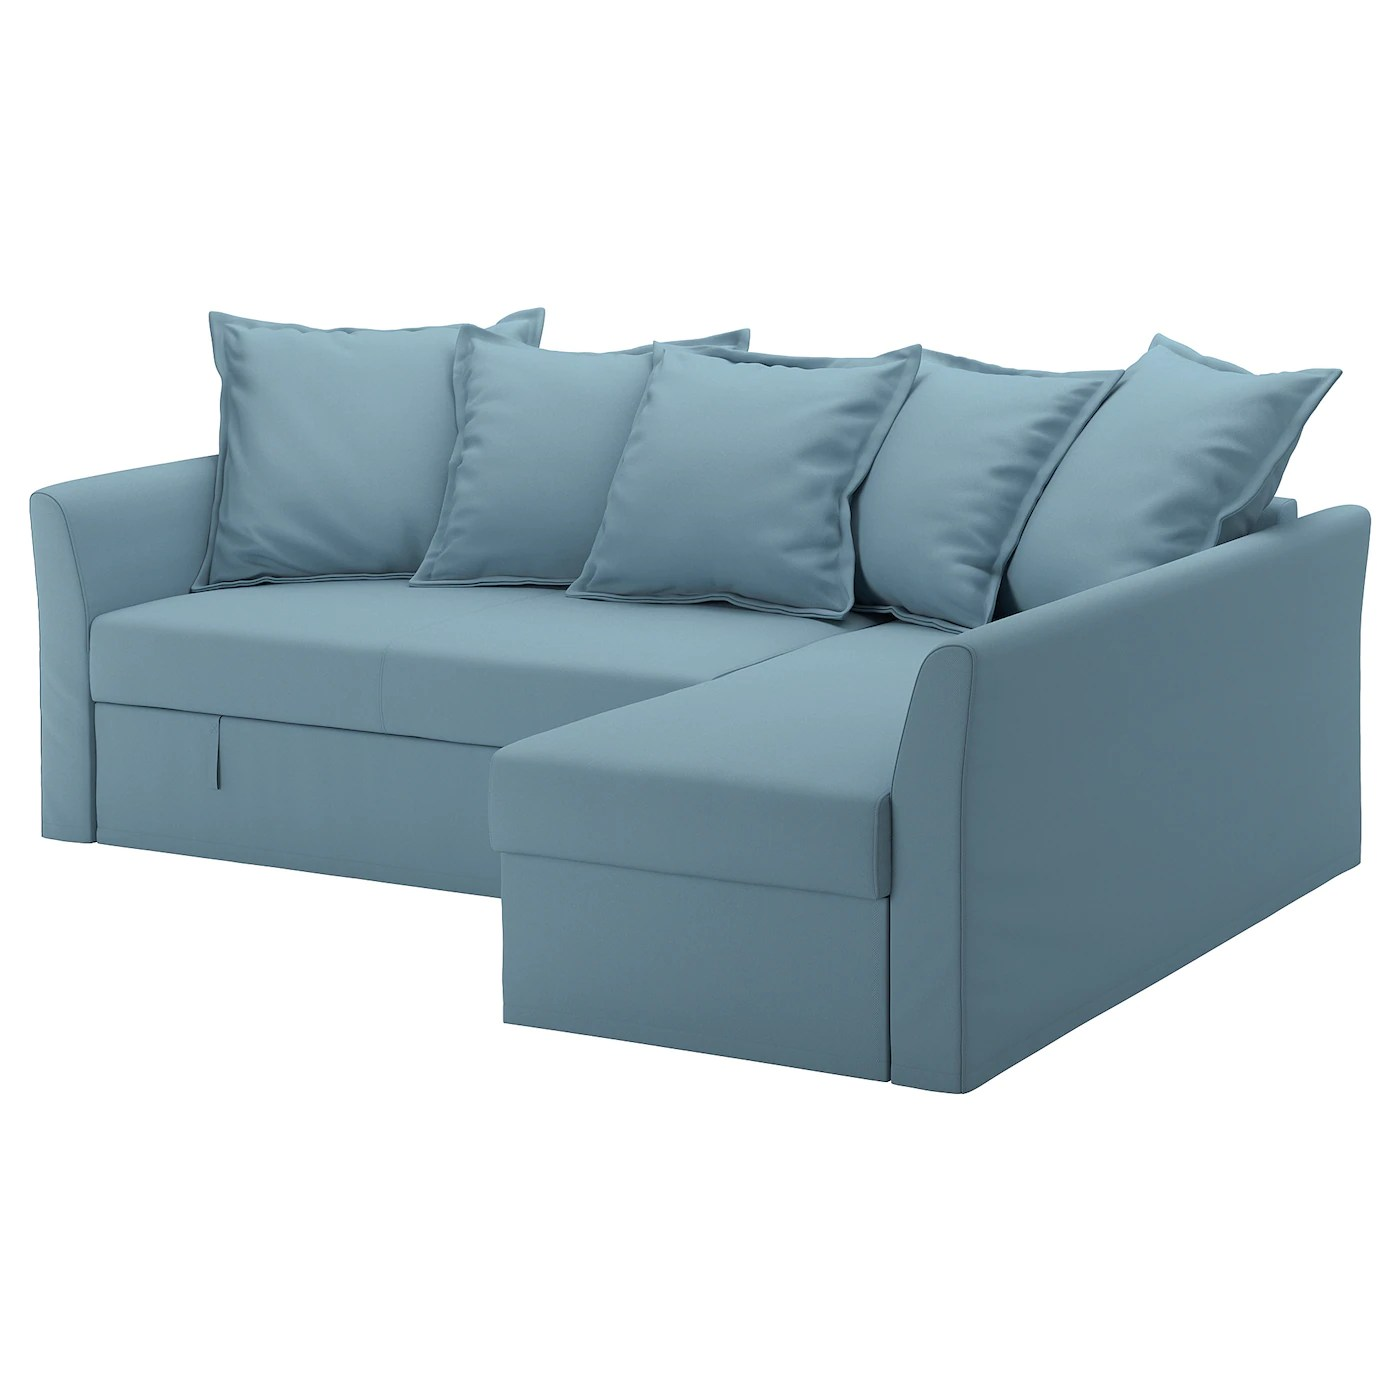 Bettsofa Ikea Blau Holmsund Corner Sofa Bed Gräsbo Light Blue